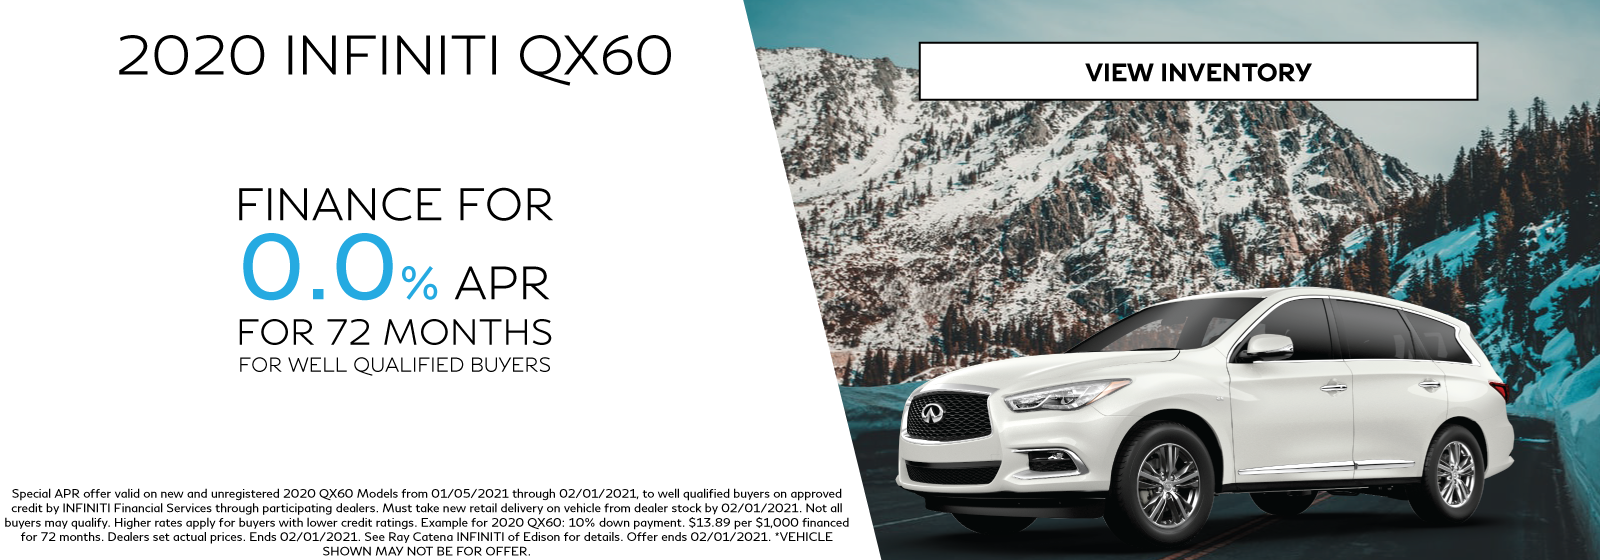 2020 INFINITI QX60 Finance Offer. Finance for 0.0% APR for 72 months for well-qualified buyers. Click to view inventory.